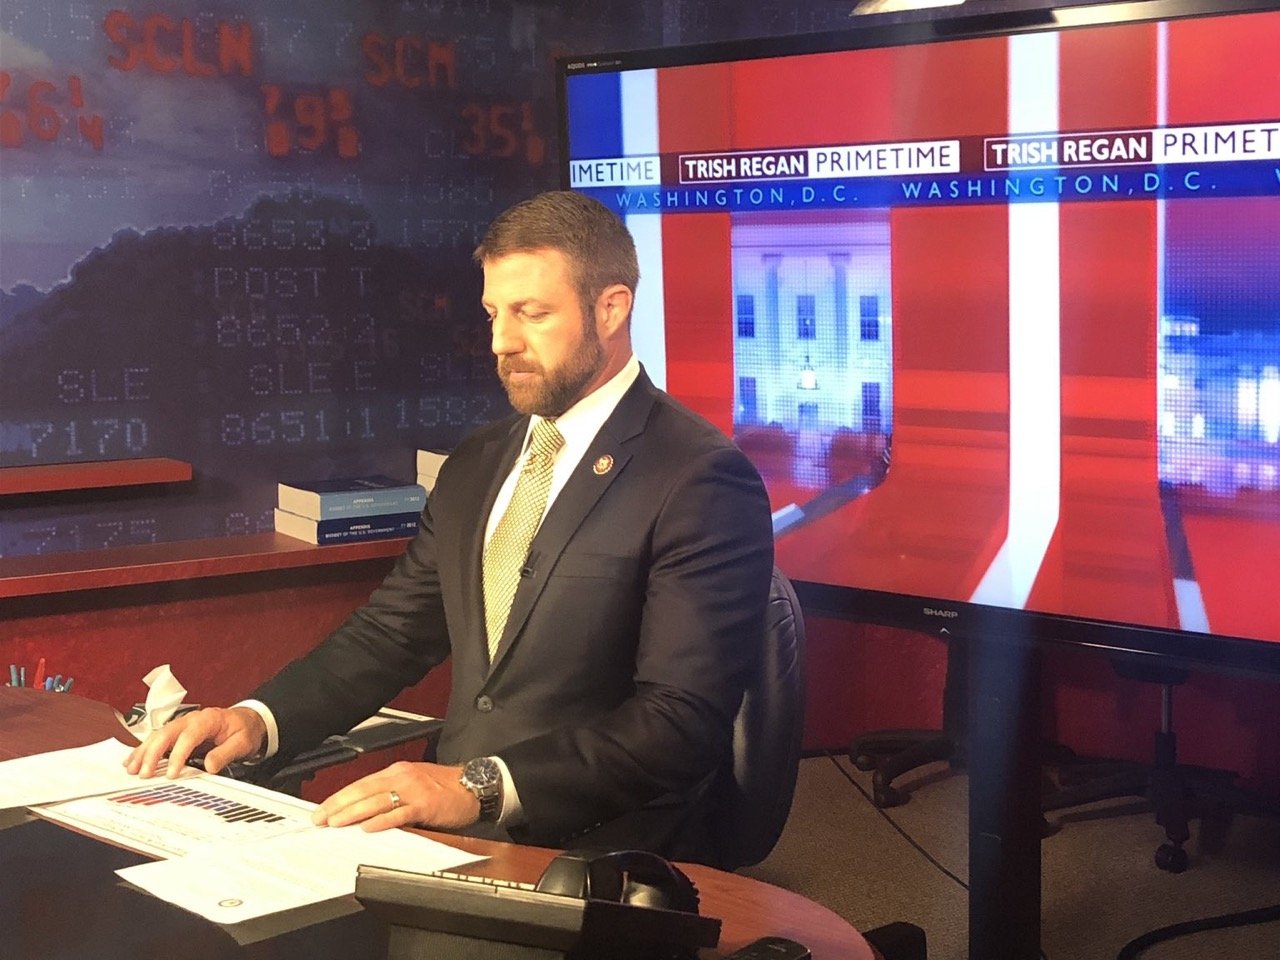 Rep. Markwayne Mullin: Budget deal is bad for America's future